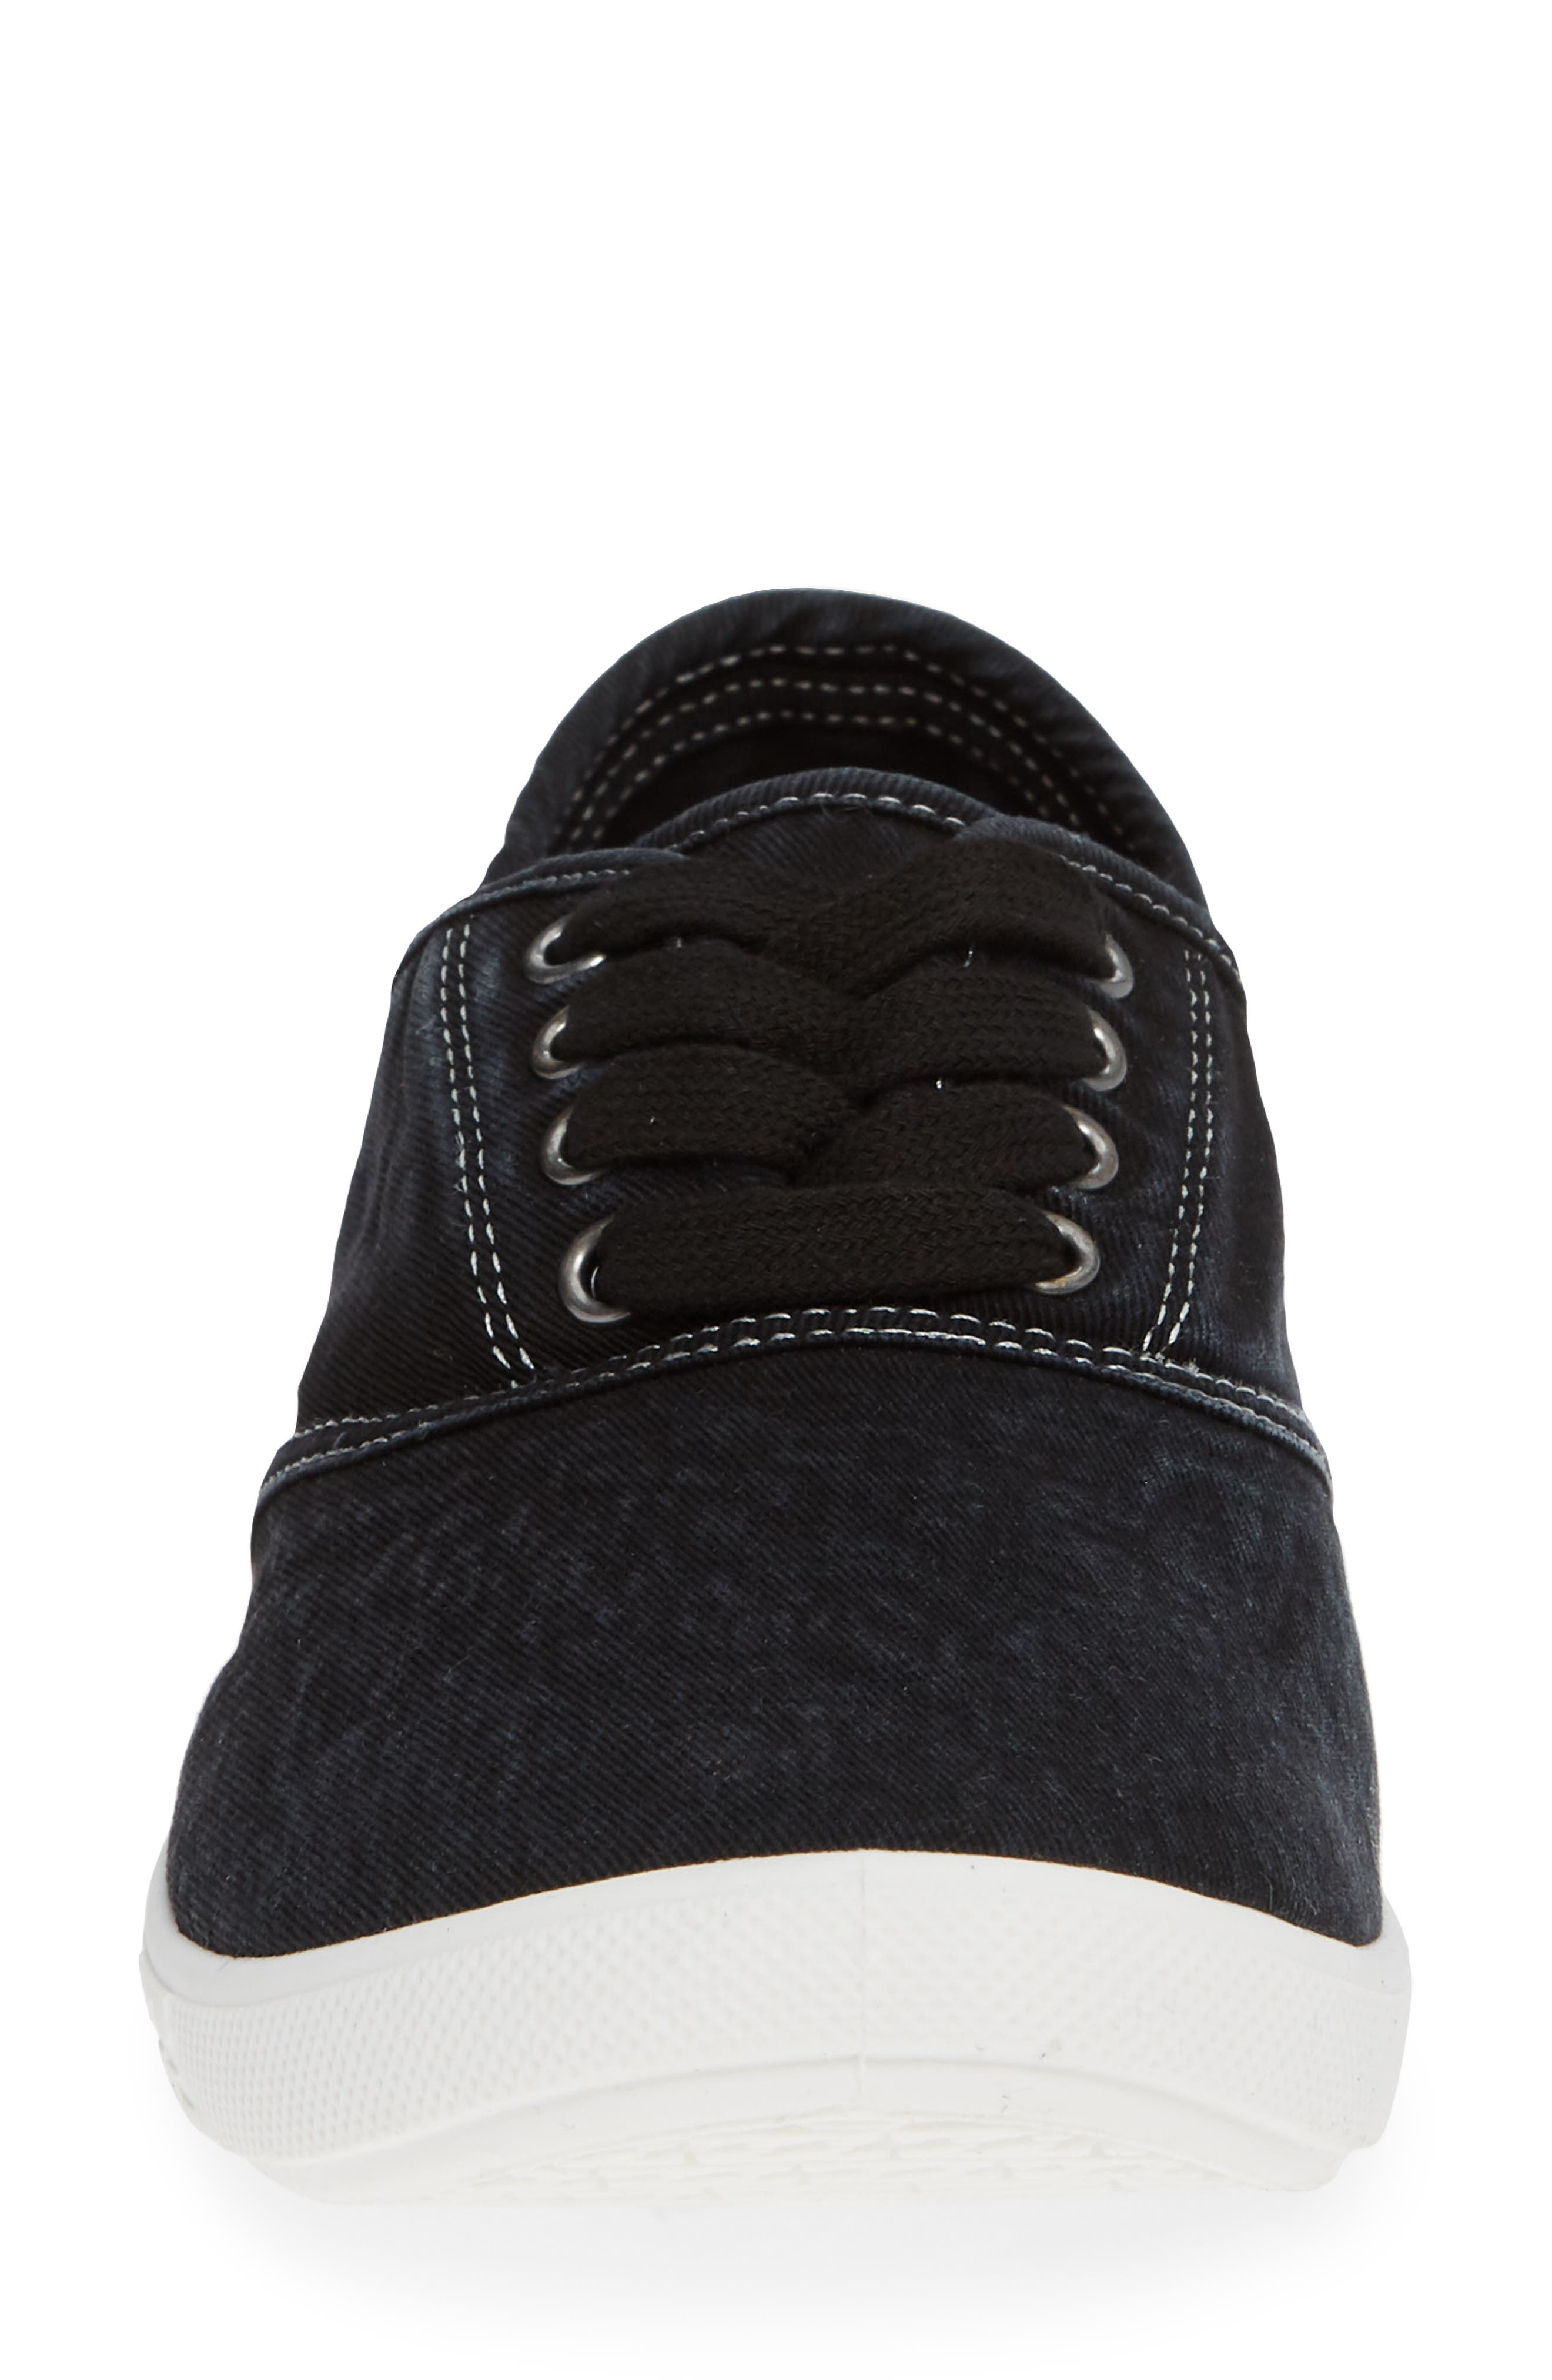 Addy Sneaker,                             Alternate thumbnail 4, color,                             Off Black